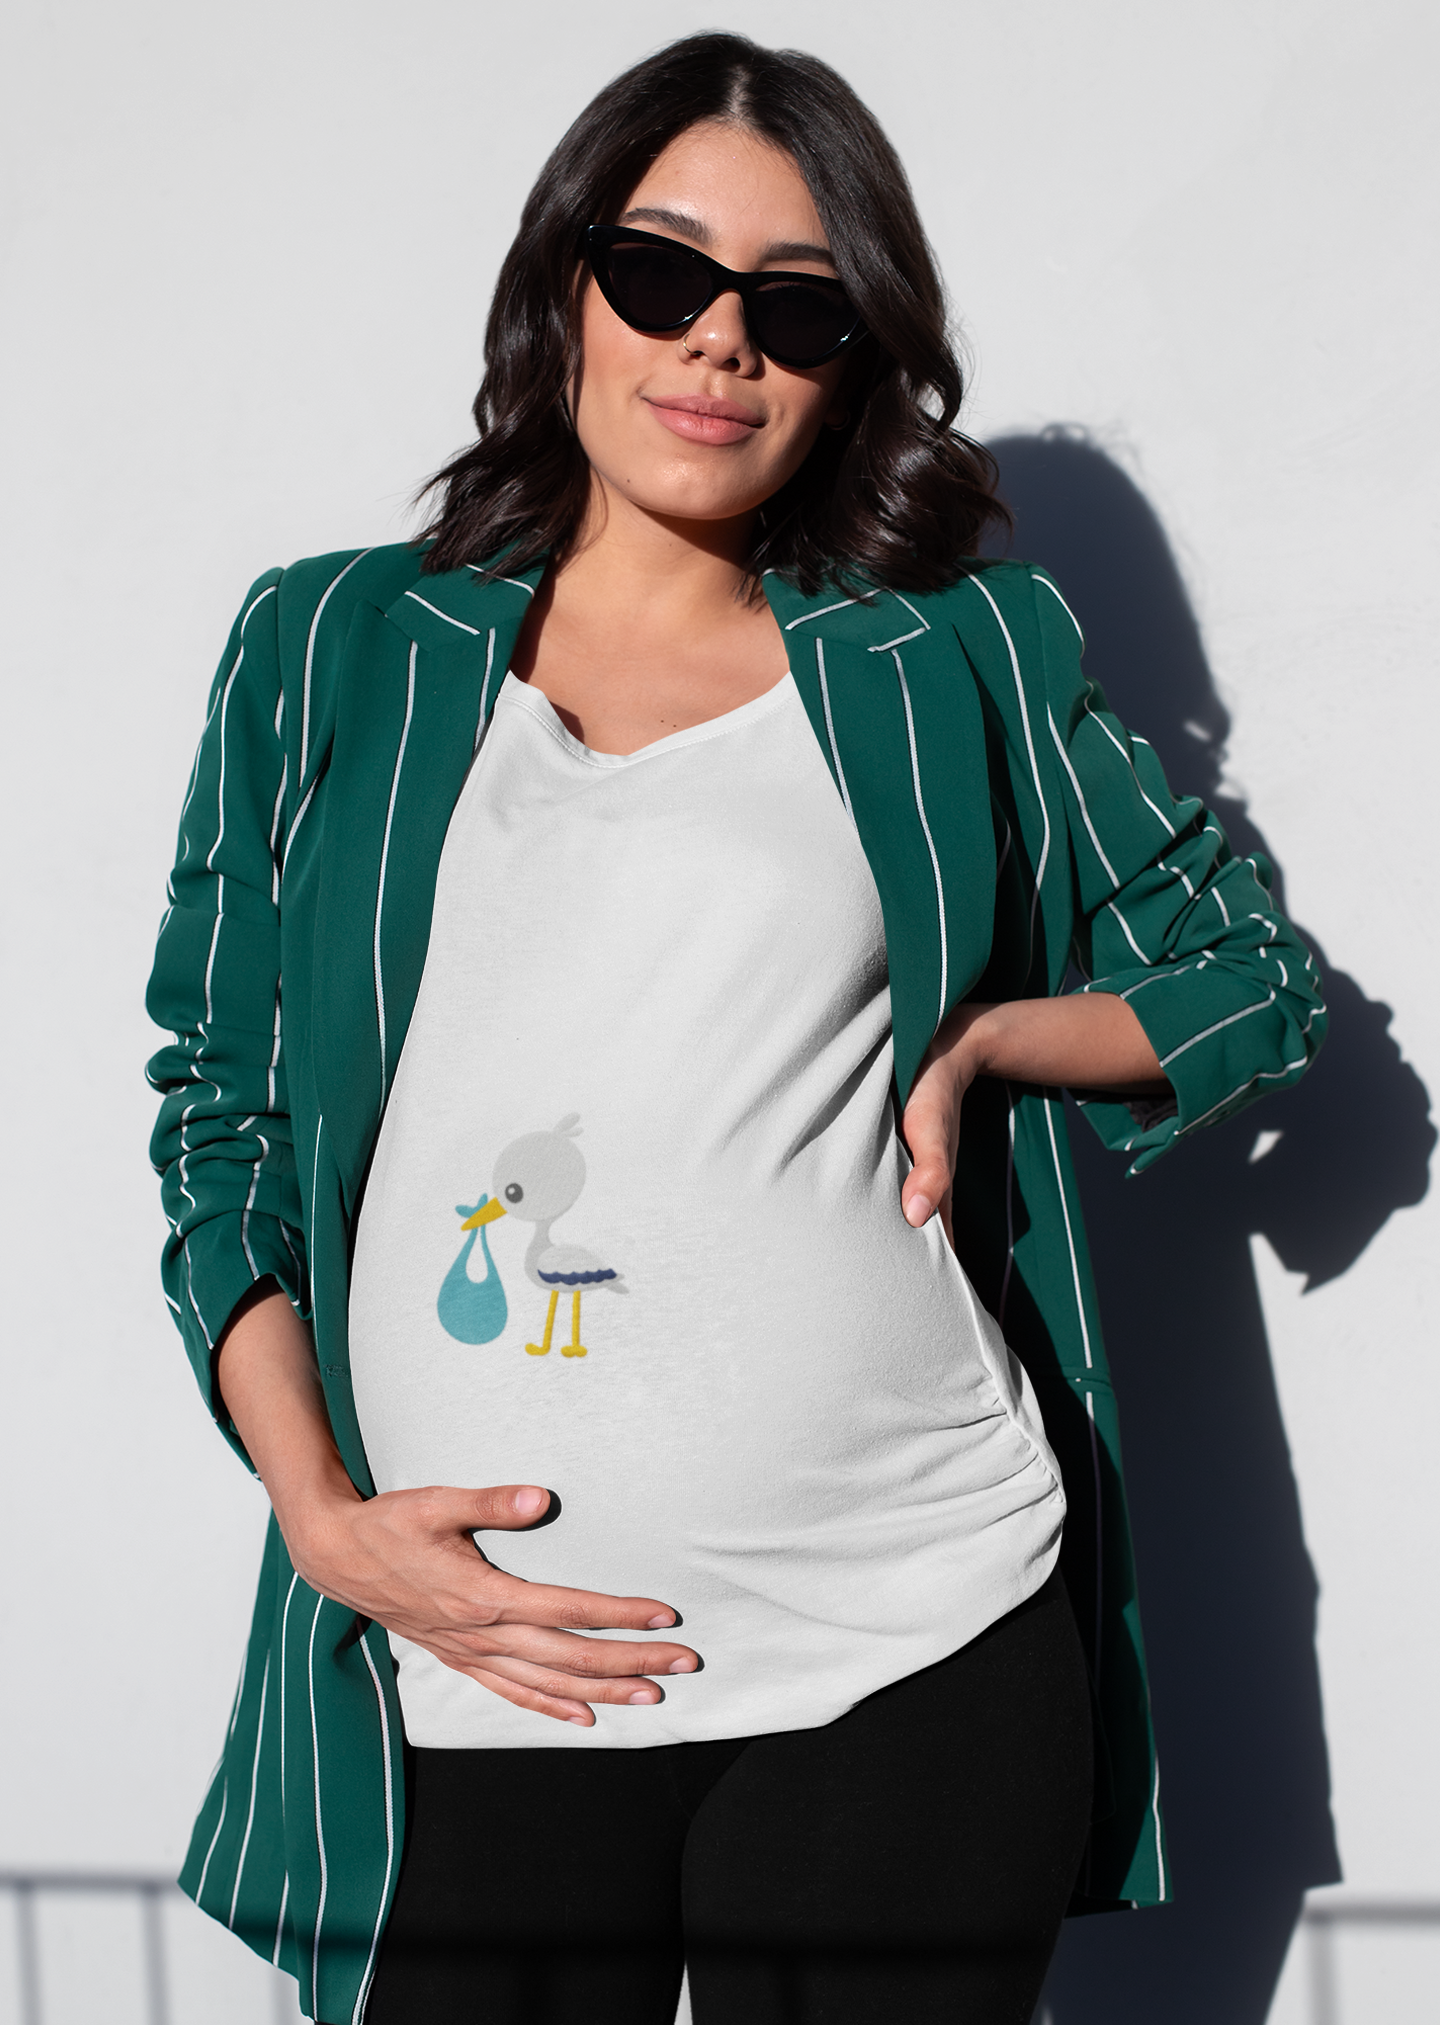 Embroidered t-shirt with Stork with baby design